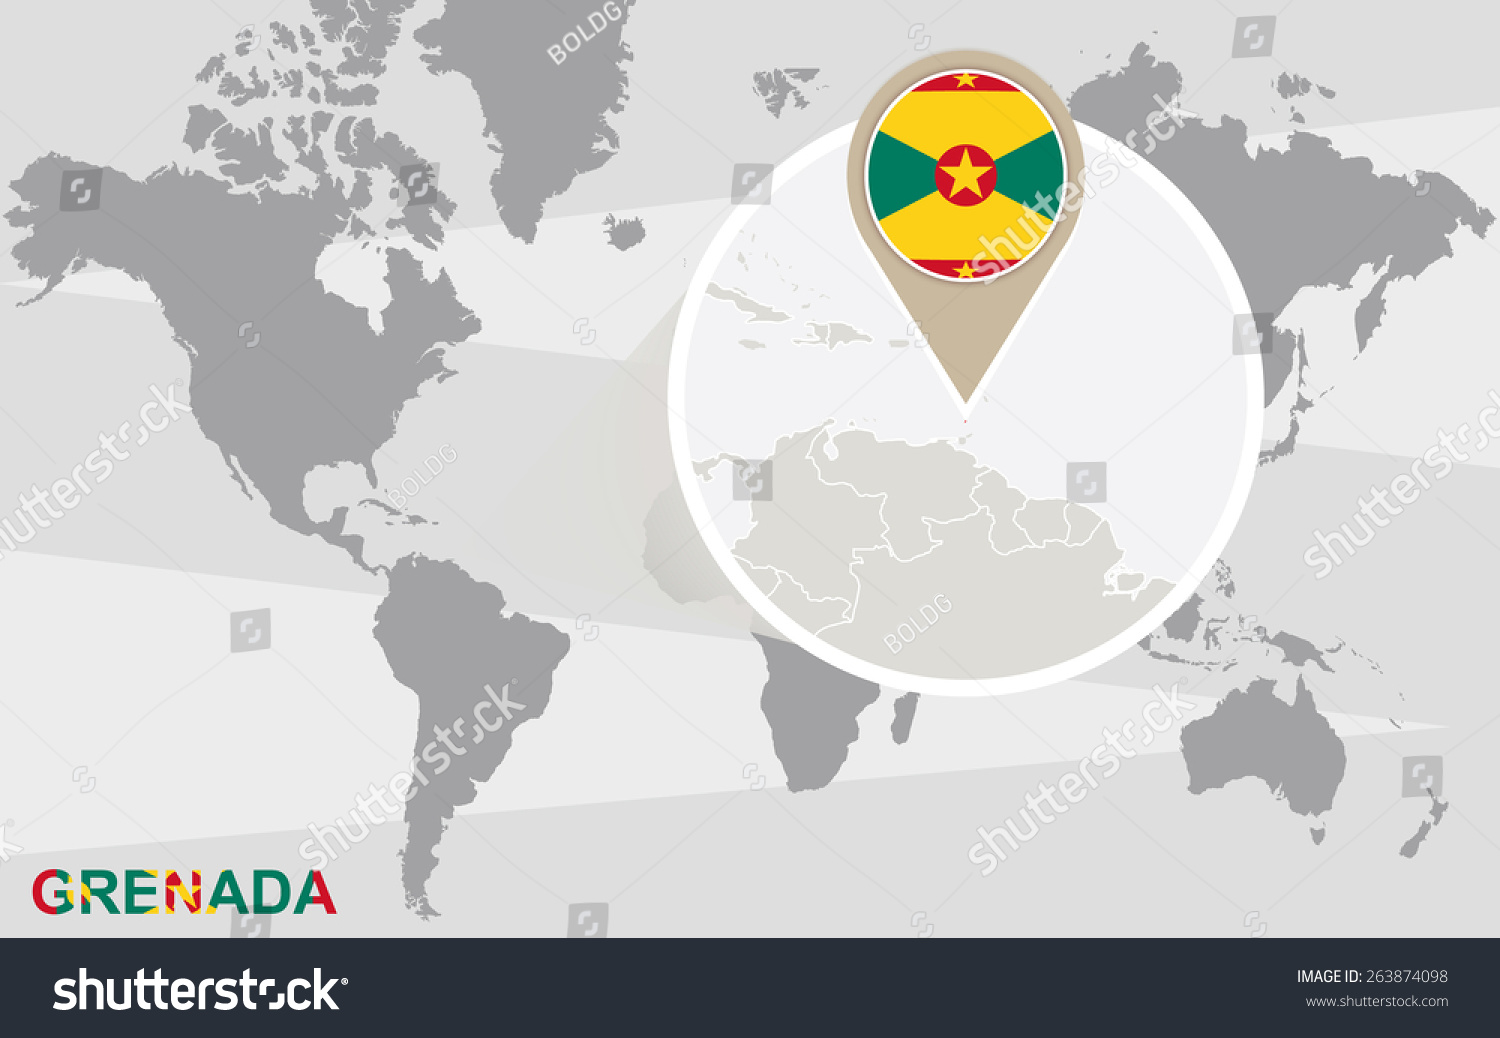 World map magnified grenada grenada flag stock vector 263874098 world map with magnified grenada grenada flag and map sciox Gallery